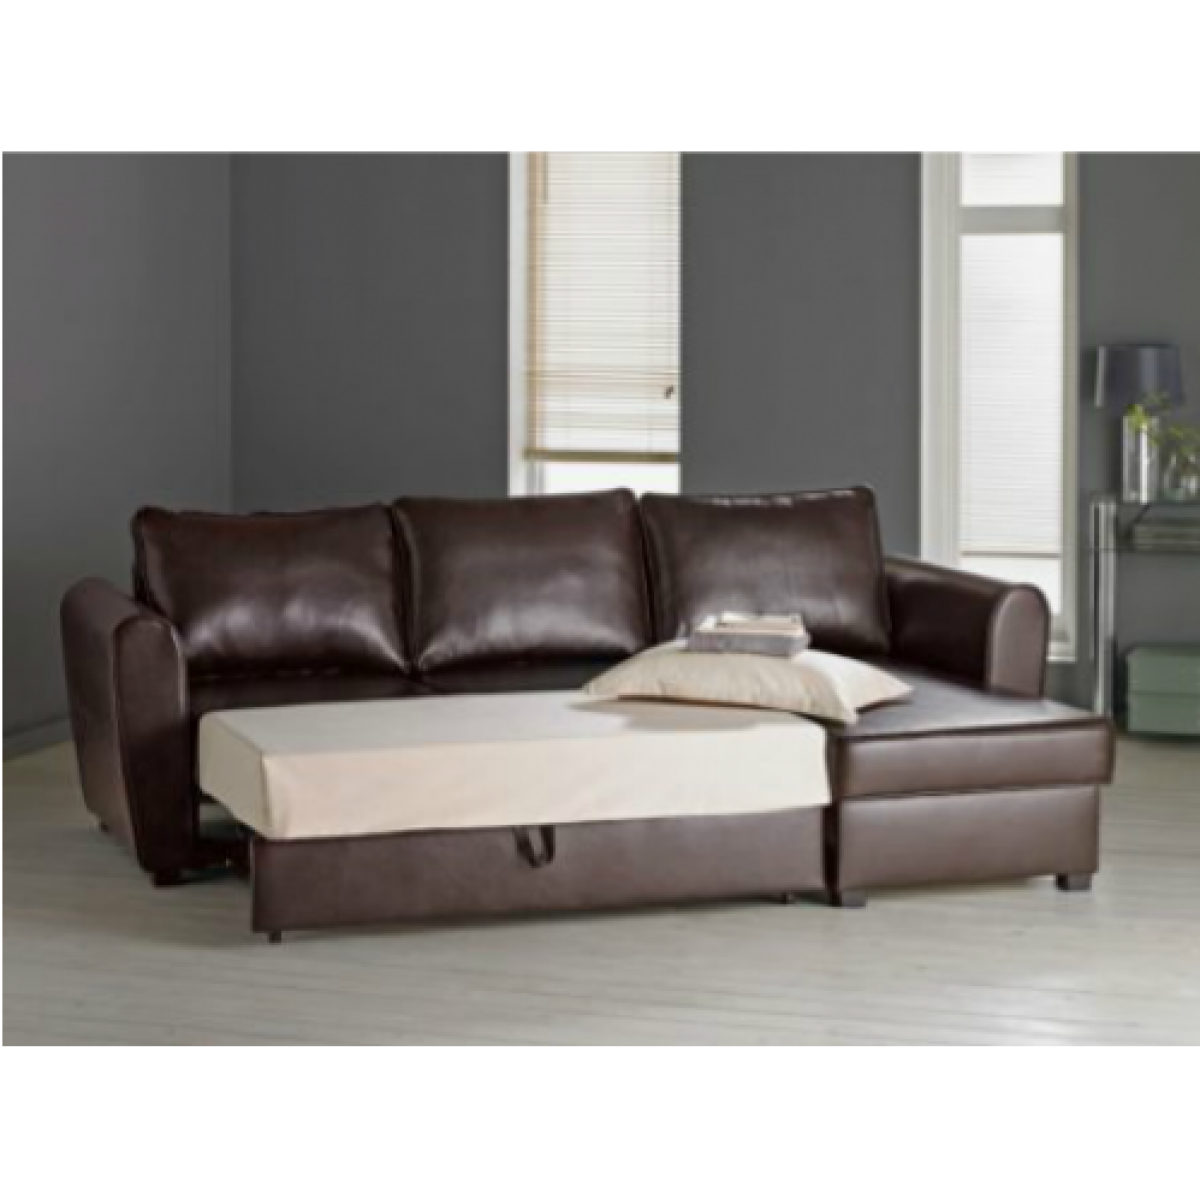 Pictures of New Siena Fabric Corner Sofa Bed with Storage - Charcoal. leather corner sofa bed with storage